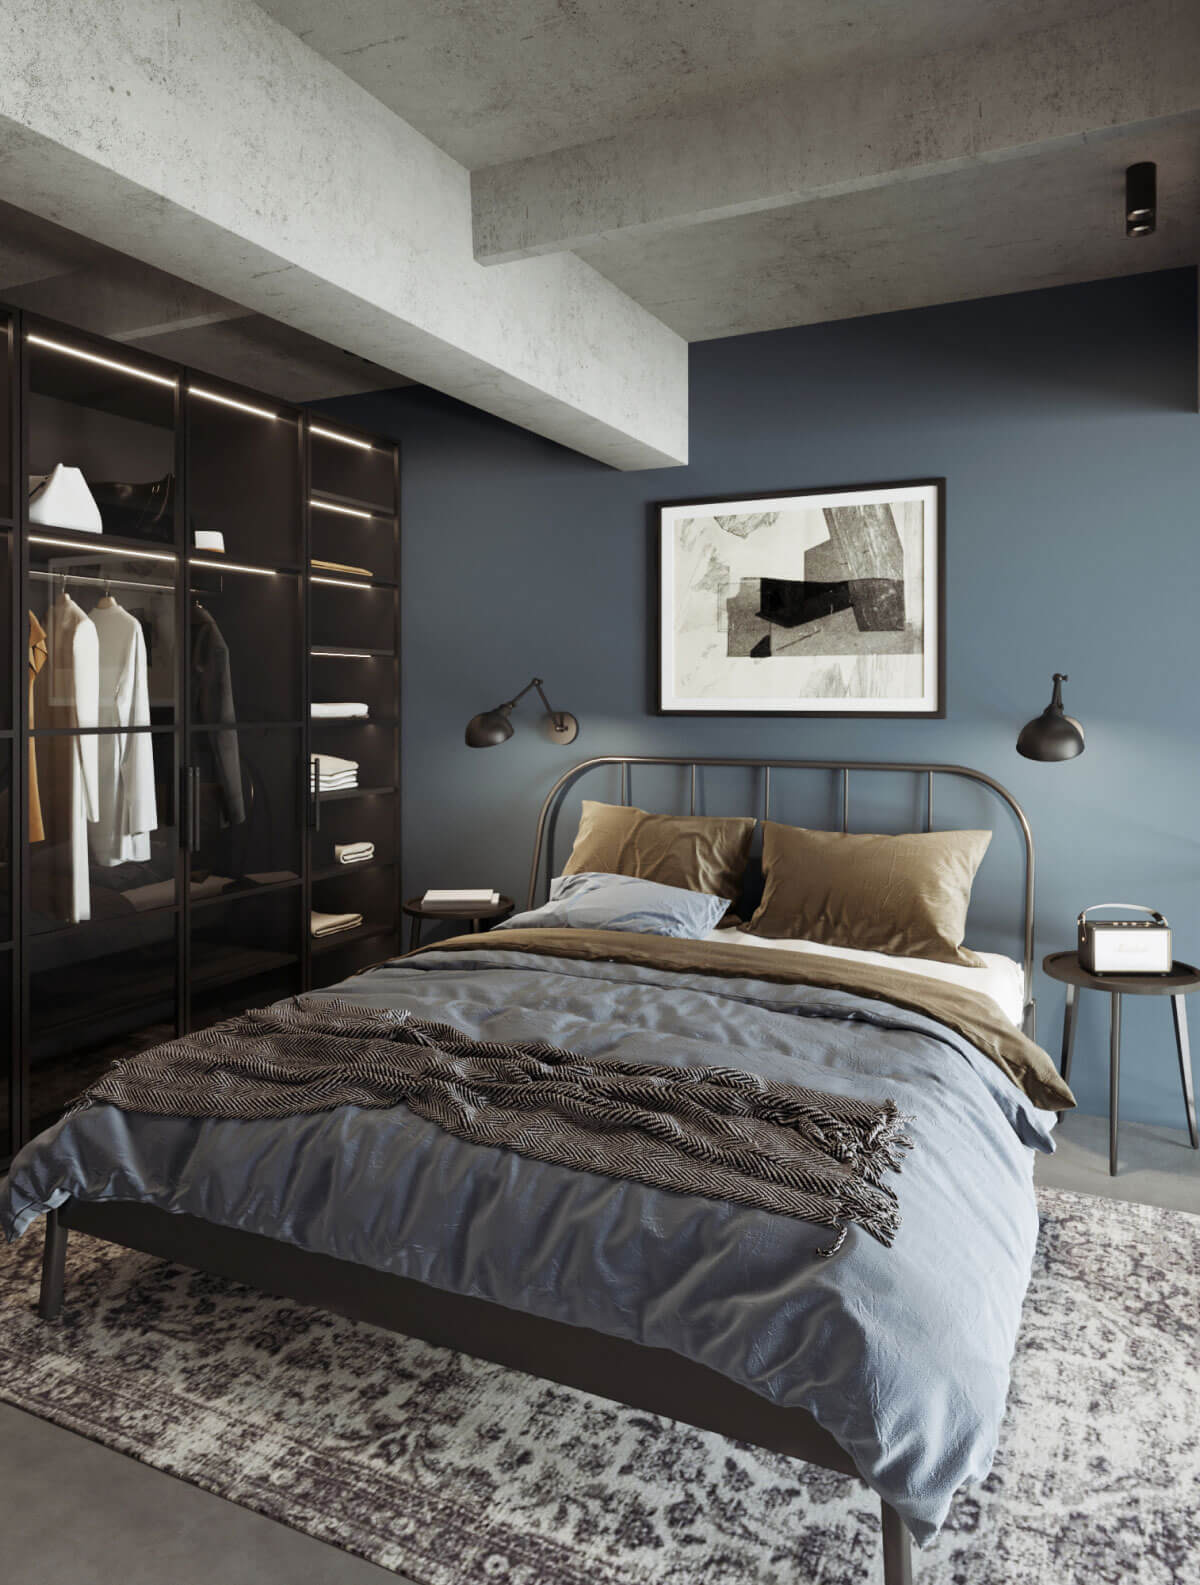 Urban style loft interior bedroom